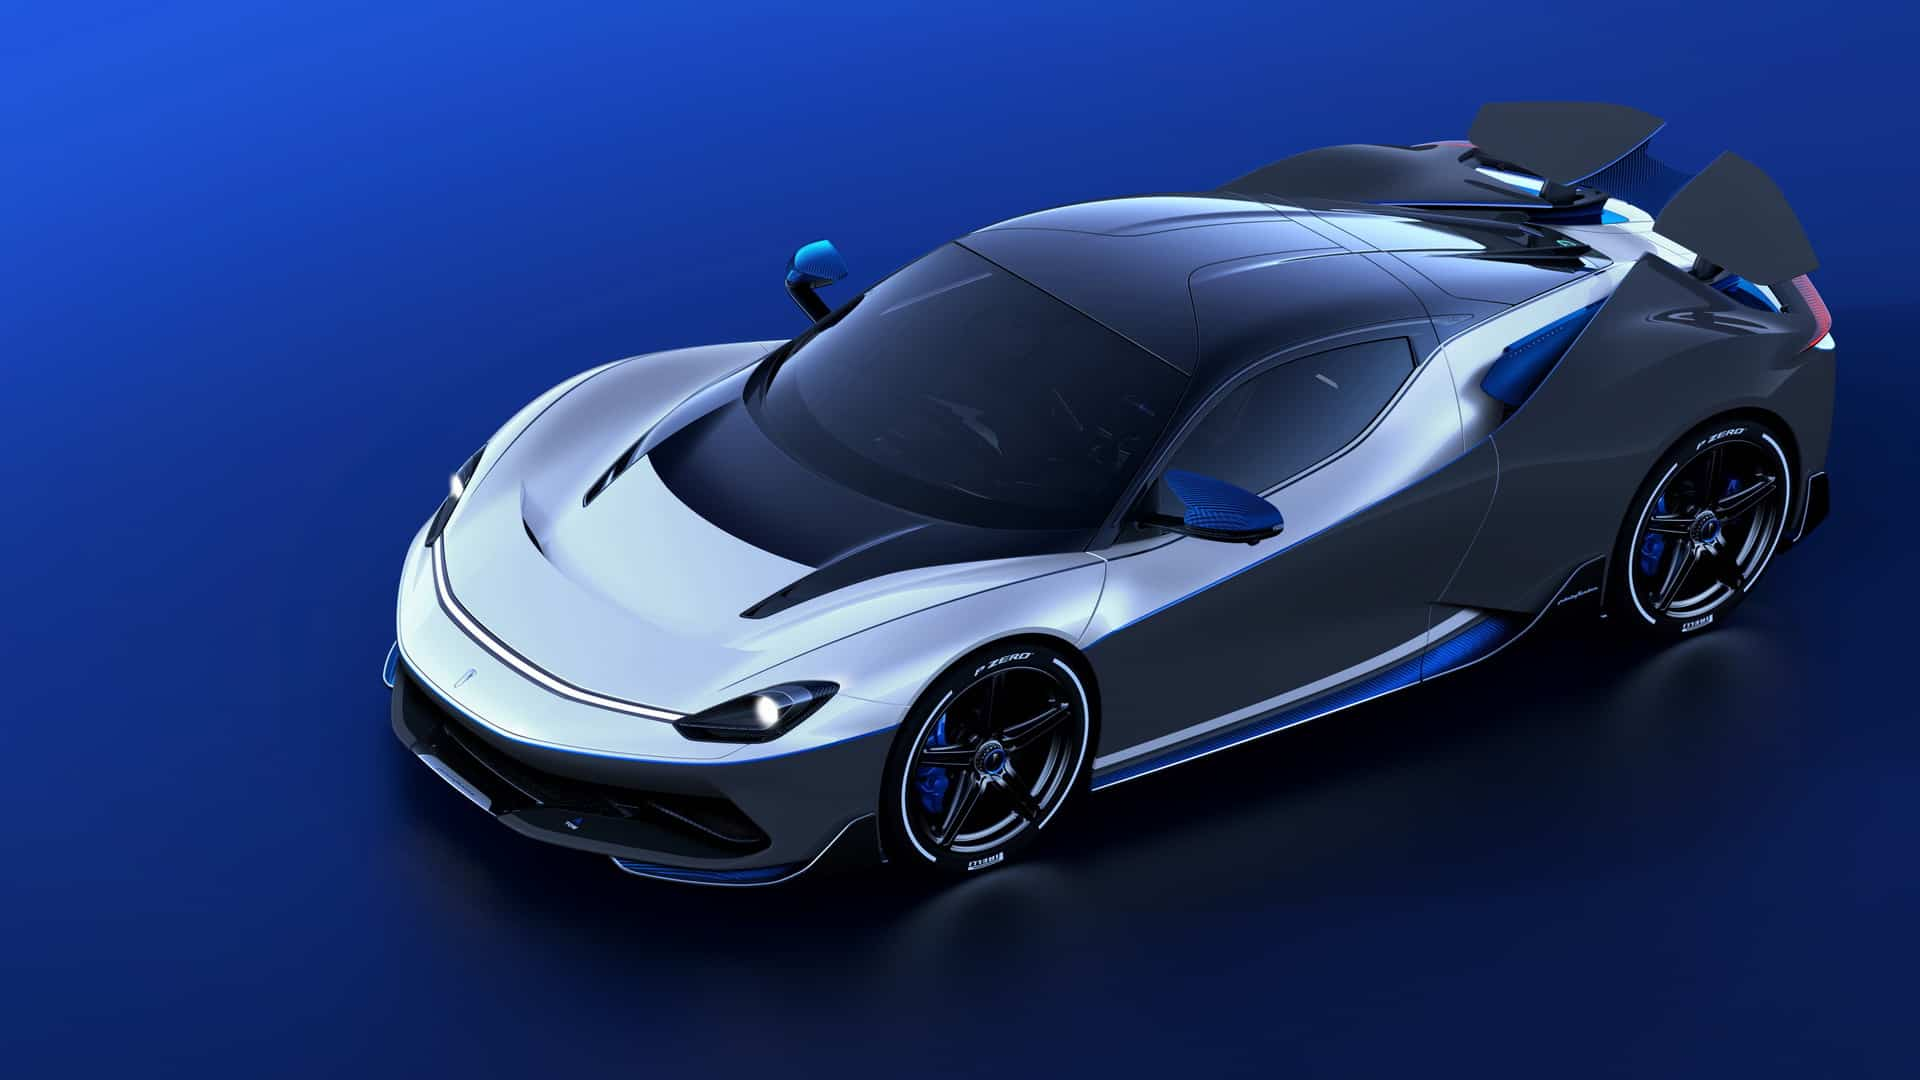 Pininfarina Battista Anniversario is the Most Powerful Road Legal Car Ever Made in Italy